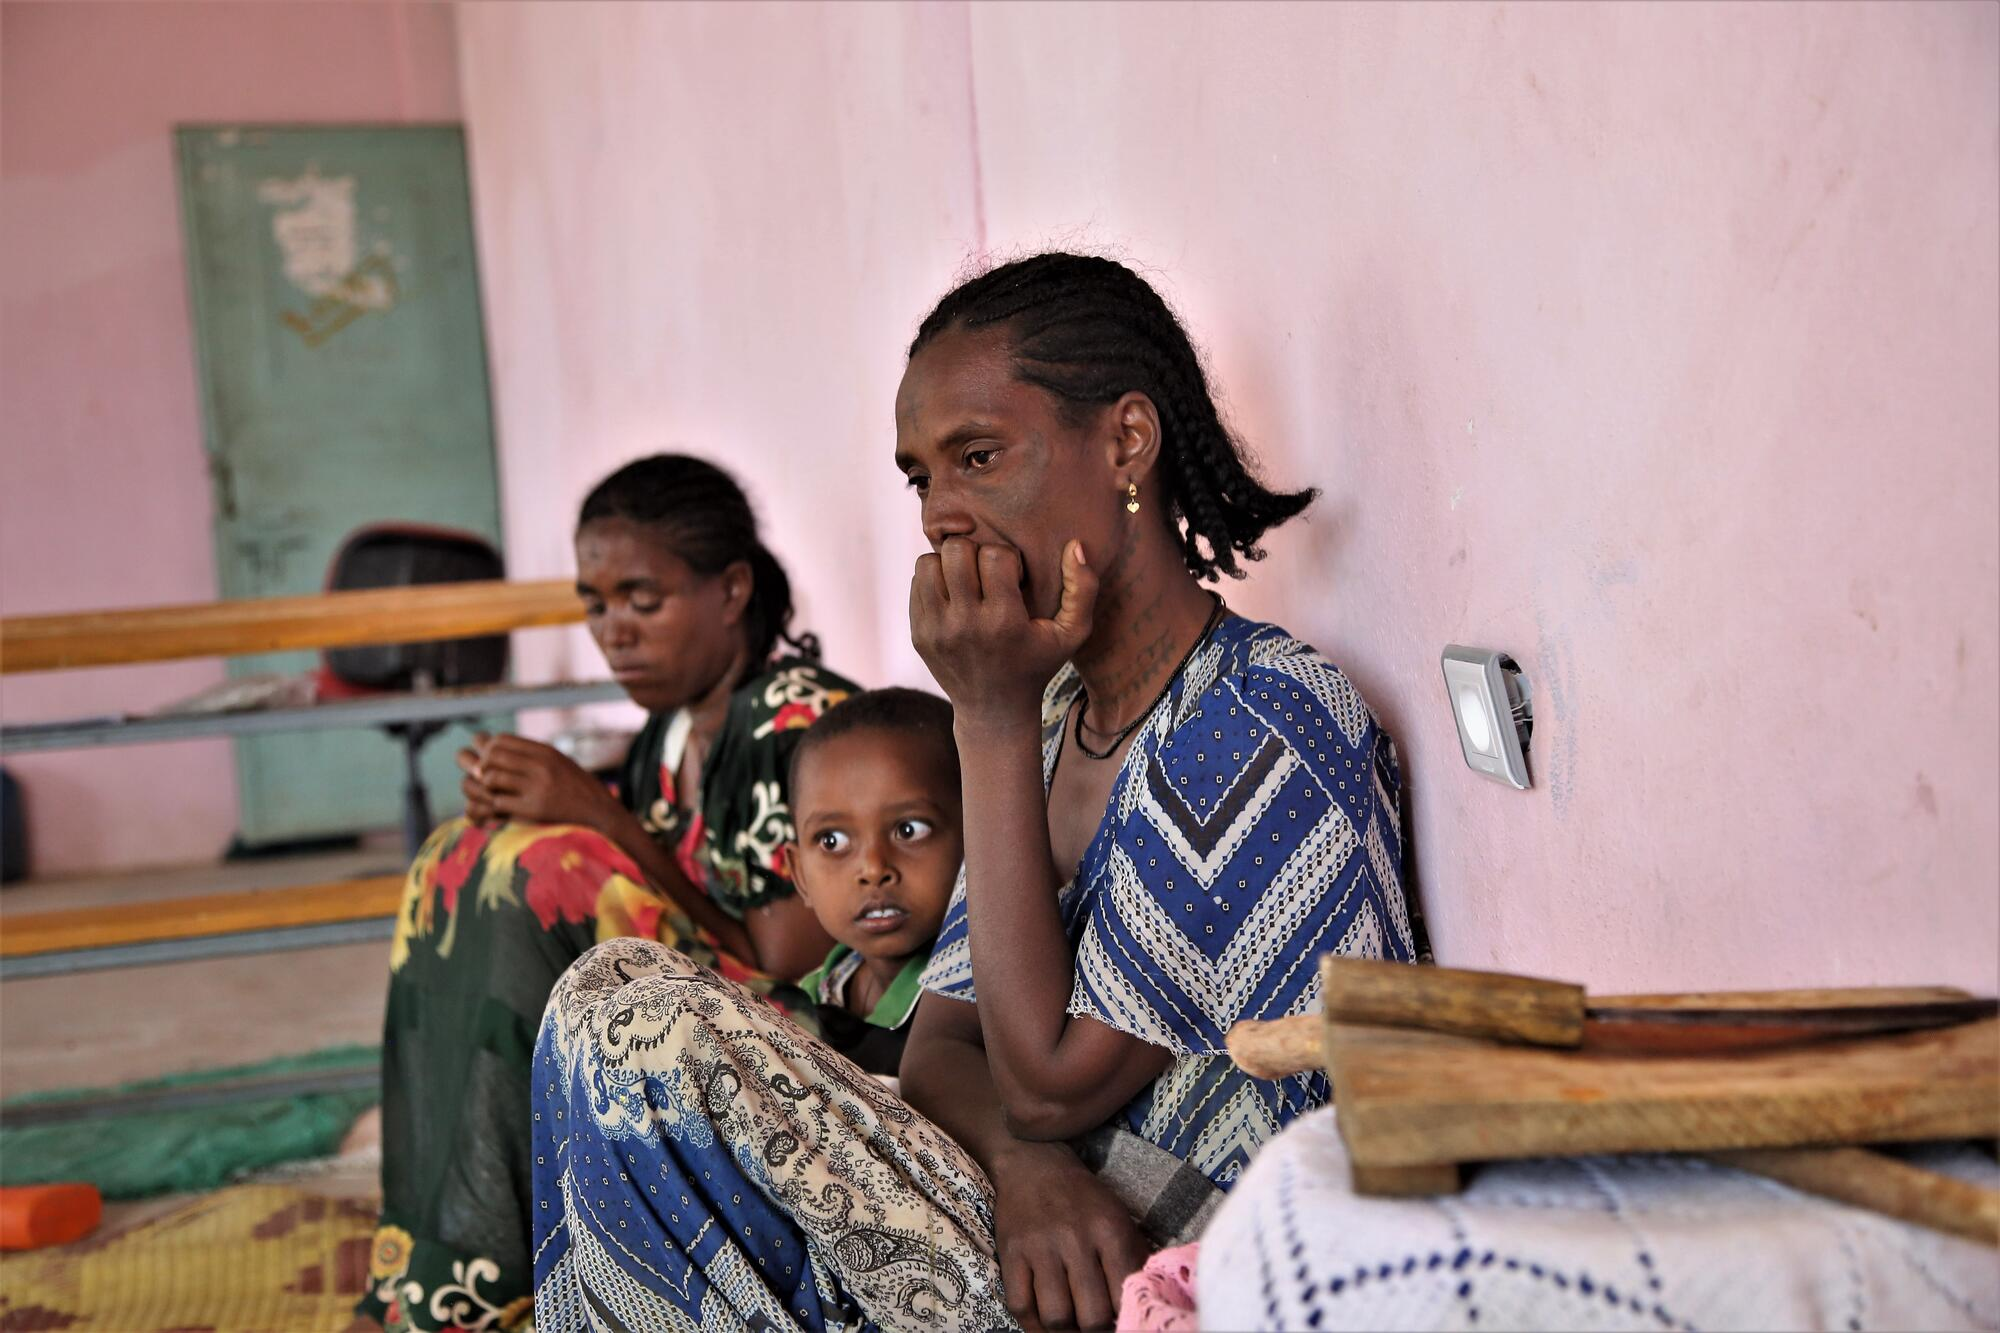 Tigray crisis: Cities in north Ethiopia fill with displaced people fleeing insecurity